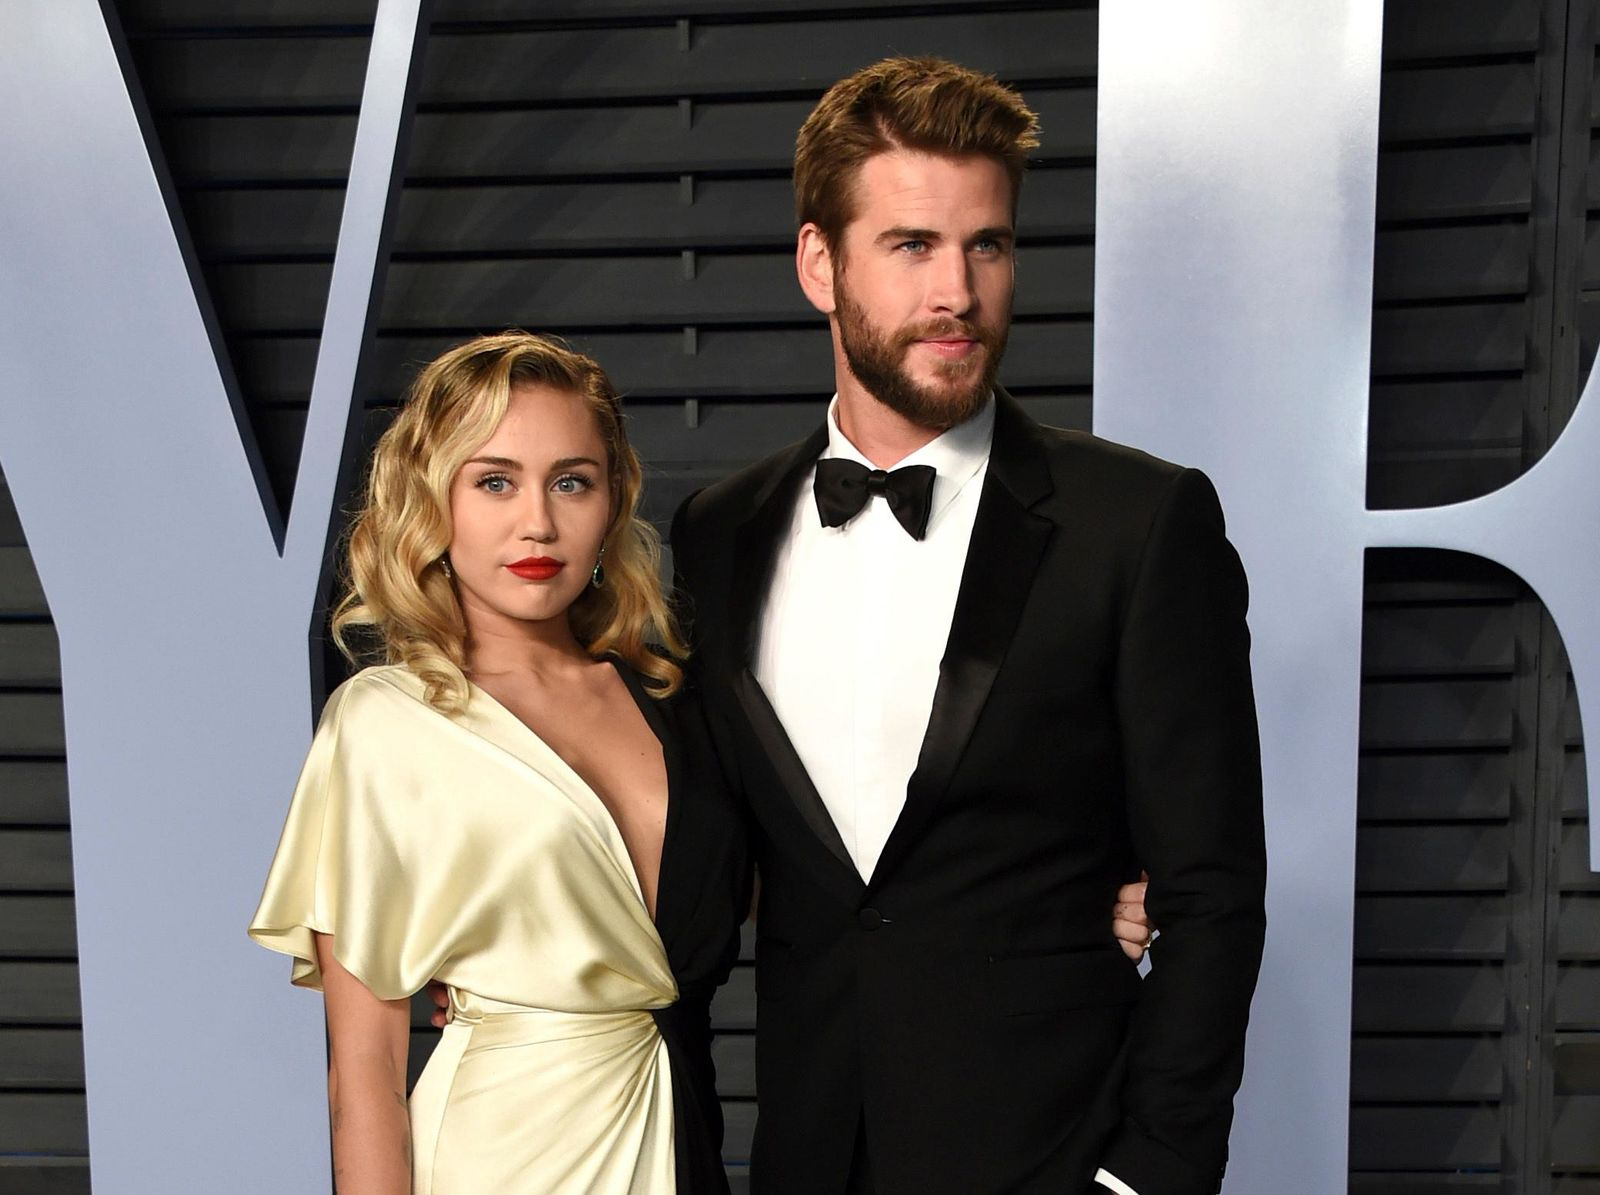 FILE - In this March 4, 2018 file photo, Miley Cyrus, left, and Liam Hemsworth arrive at the Vanity Fair Oscar Party in Beverly Hills, Calif.{ } (Photo by Evan Agostini/Invision/AP, FIle)